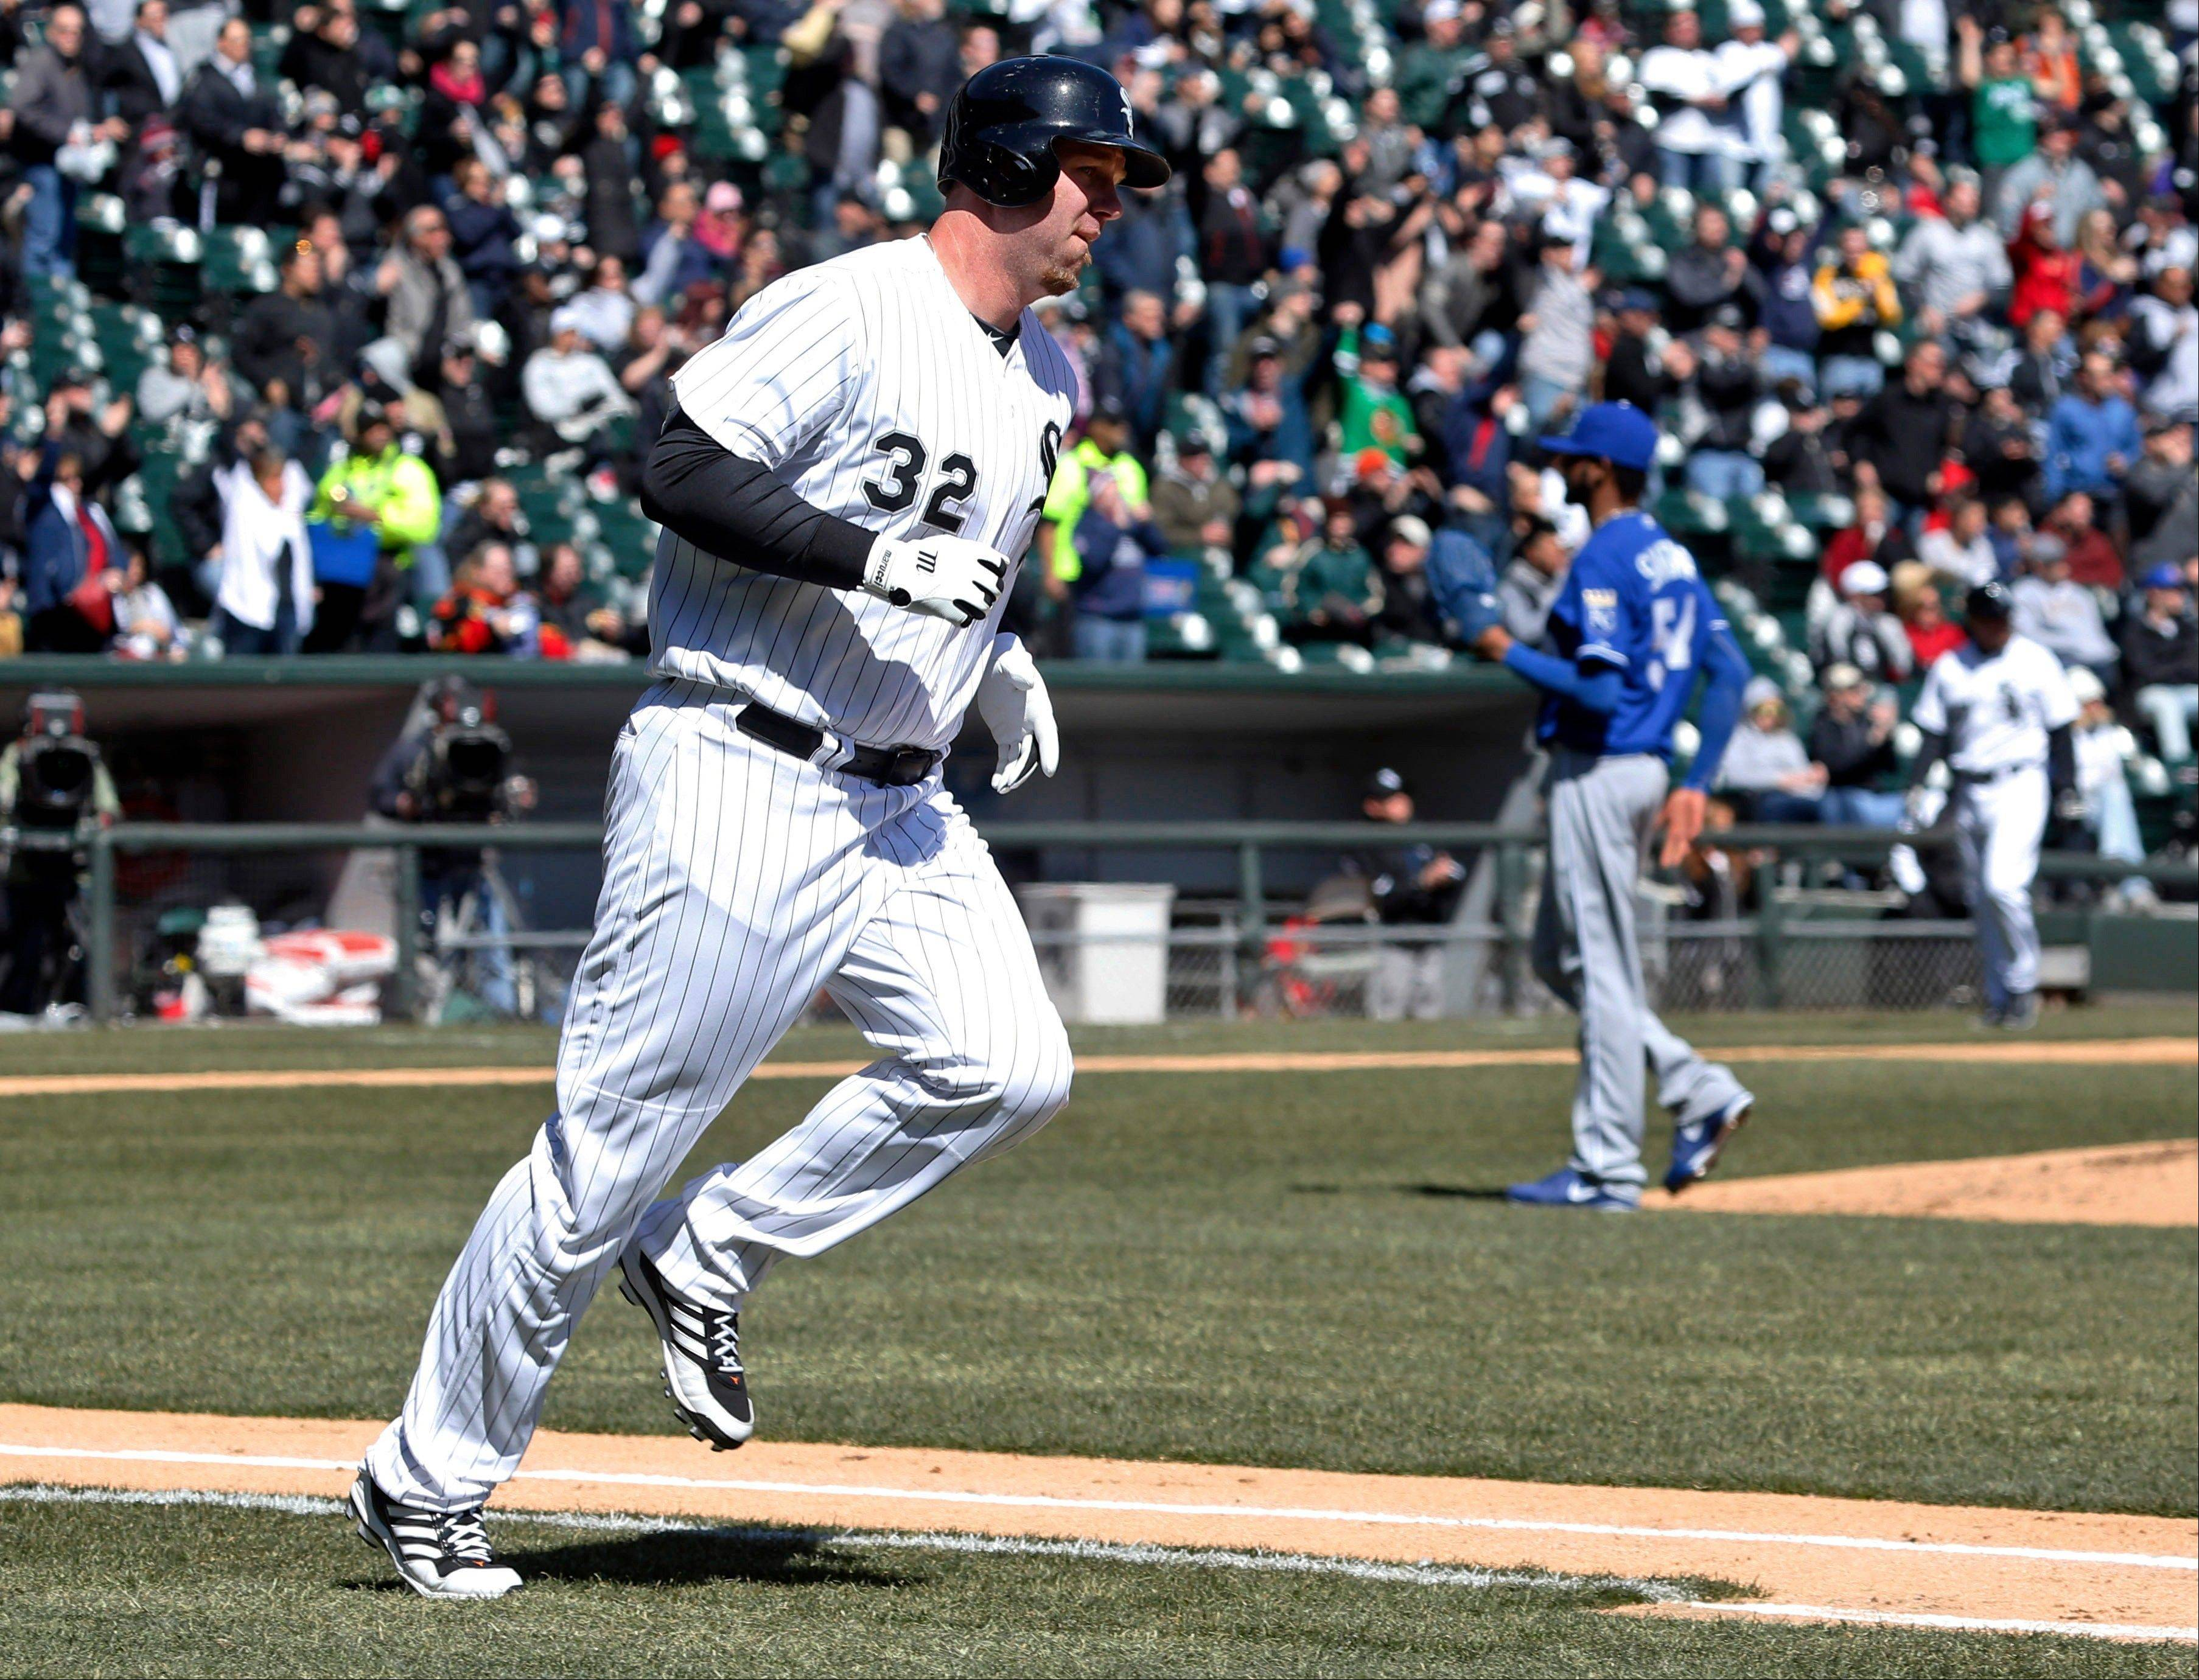 Chicago White Sox designated hitter Adam Dunn rounds the bases after hitting a home run off Kansas City Royals starting pitcher Ervin Santana during the second inning of a baseball game Wednesday, April 3, 2013, in Chicago. (AP Photo/Charles Rex Arbogast)